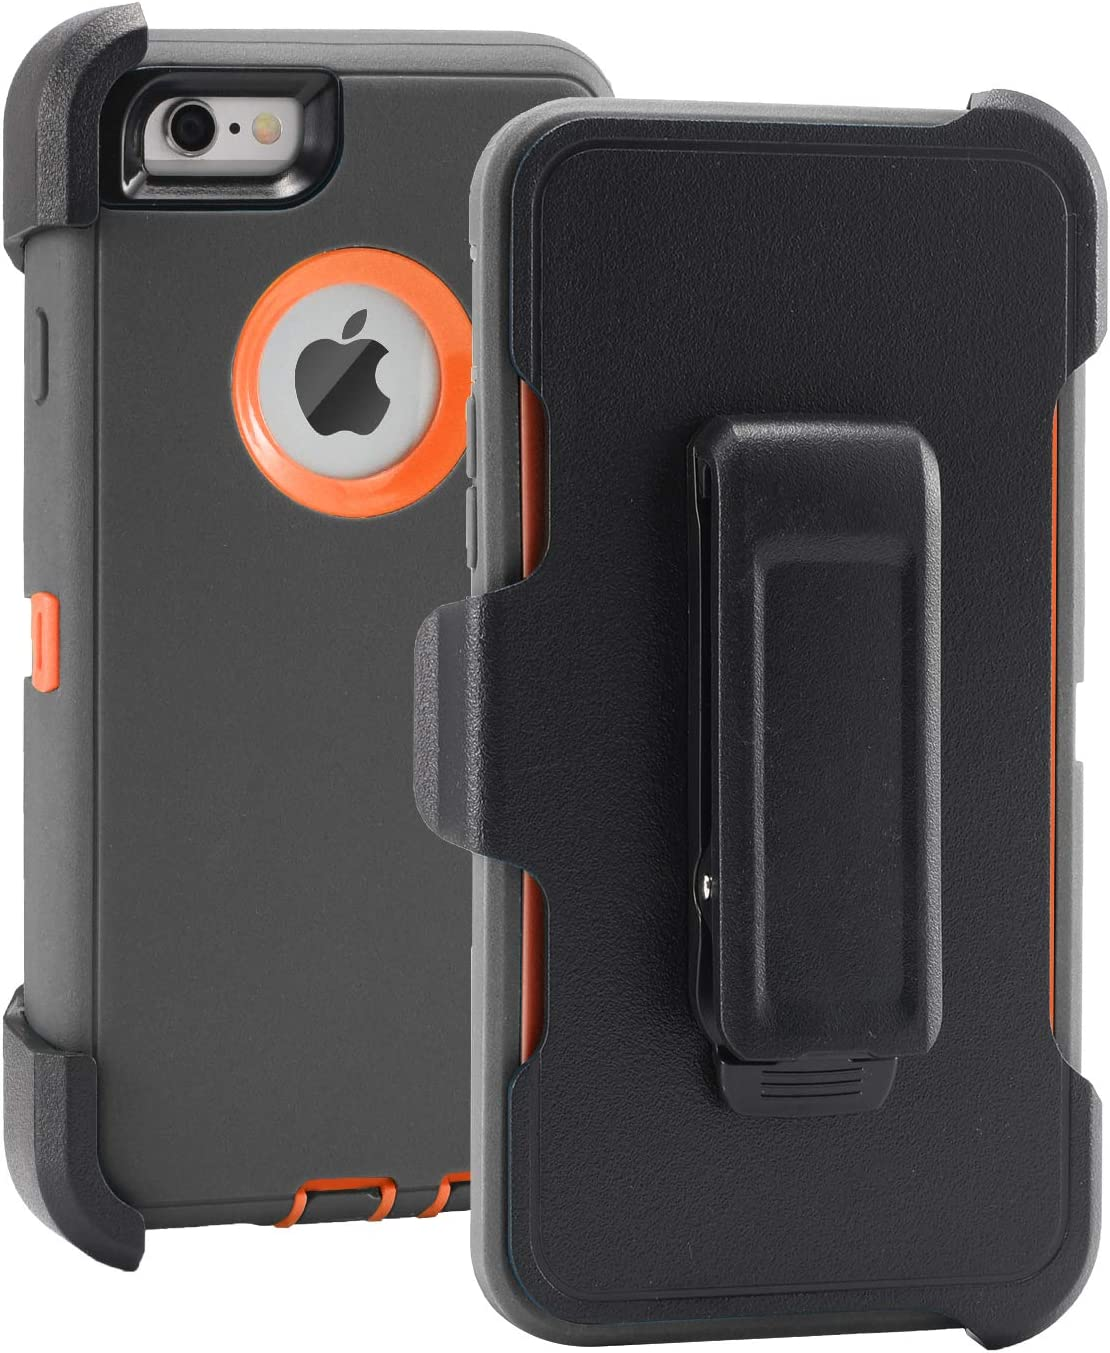 "iPhone 6/6s Case, 3 in 1 [Heavy Duty] Rugged Dust-Proof Shockproof Drop-Proof Scratch-Resistant Case with Built-in Screen Protector and Holster 4.7"" (Grey)"